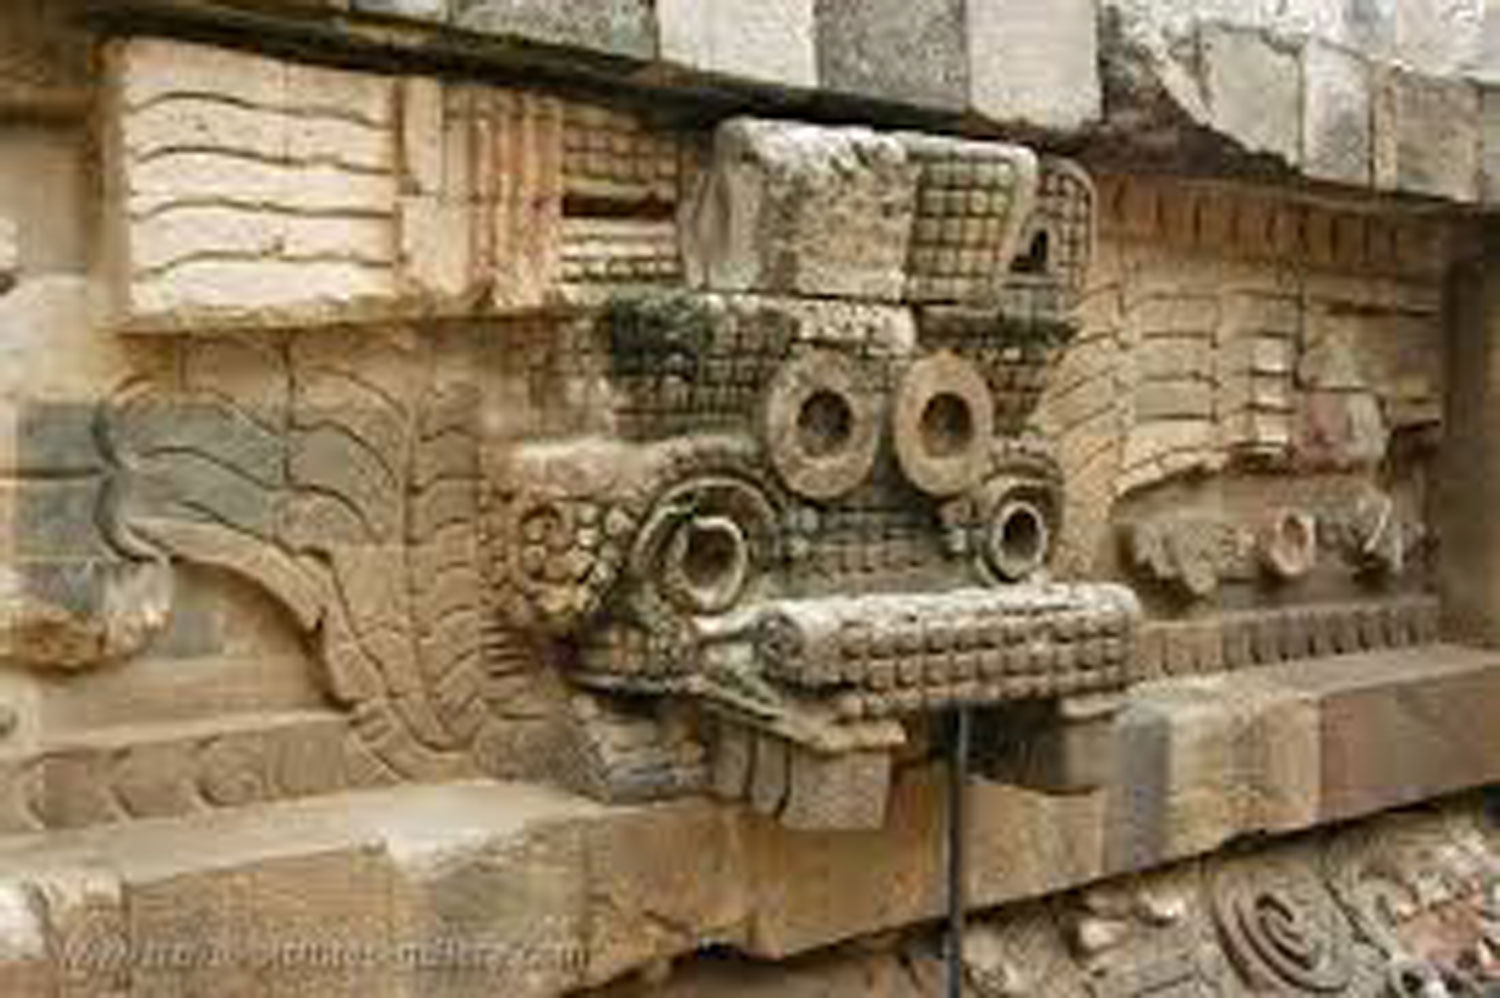 Tláloc with serpentine headdresses in Teotihuacán, an avatar of Quetzalcóatl? Credit: Pinterest.